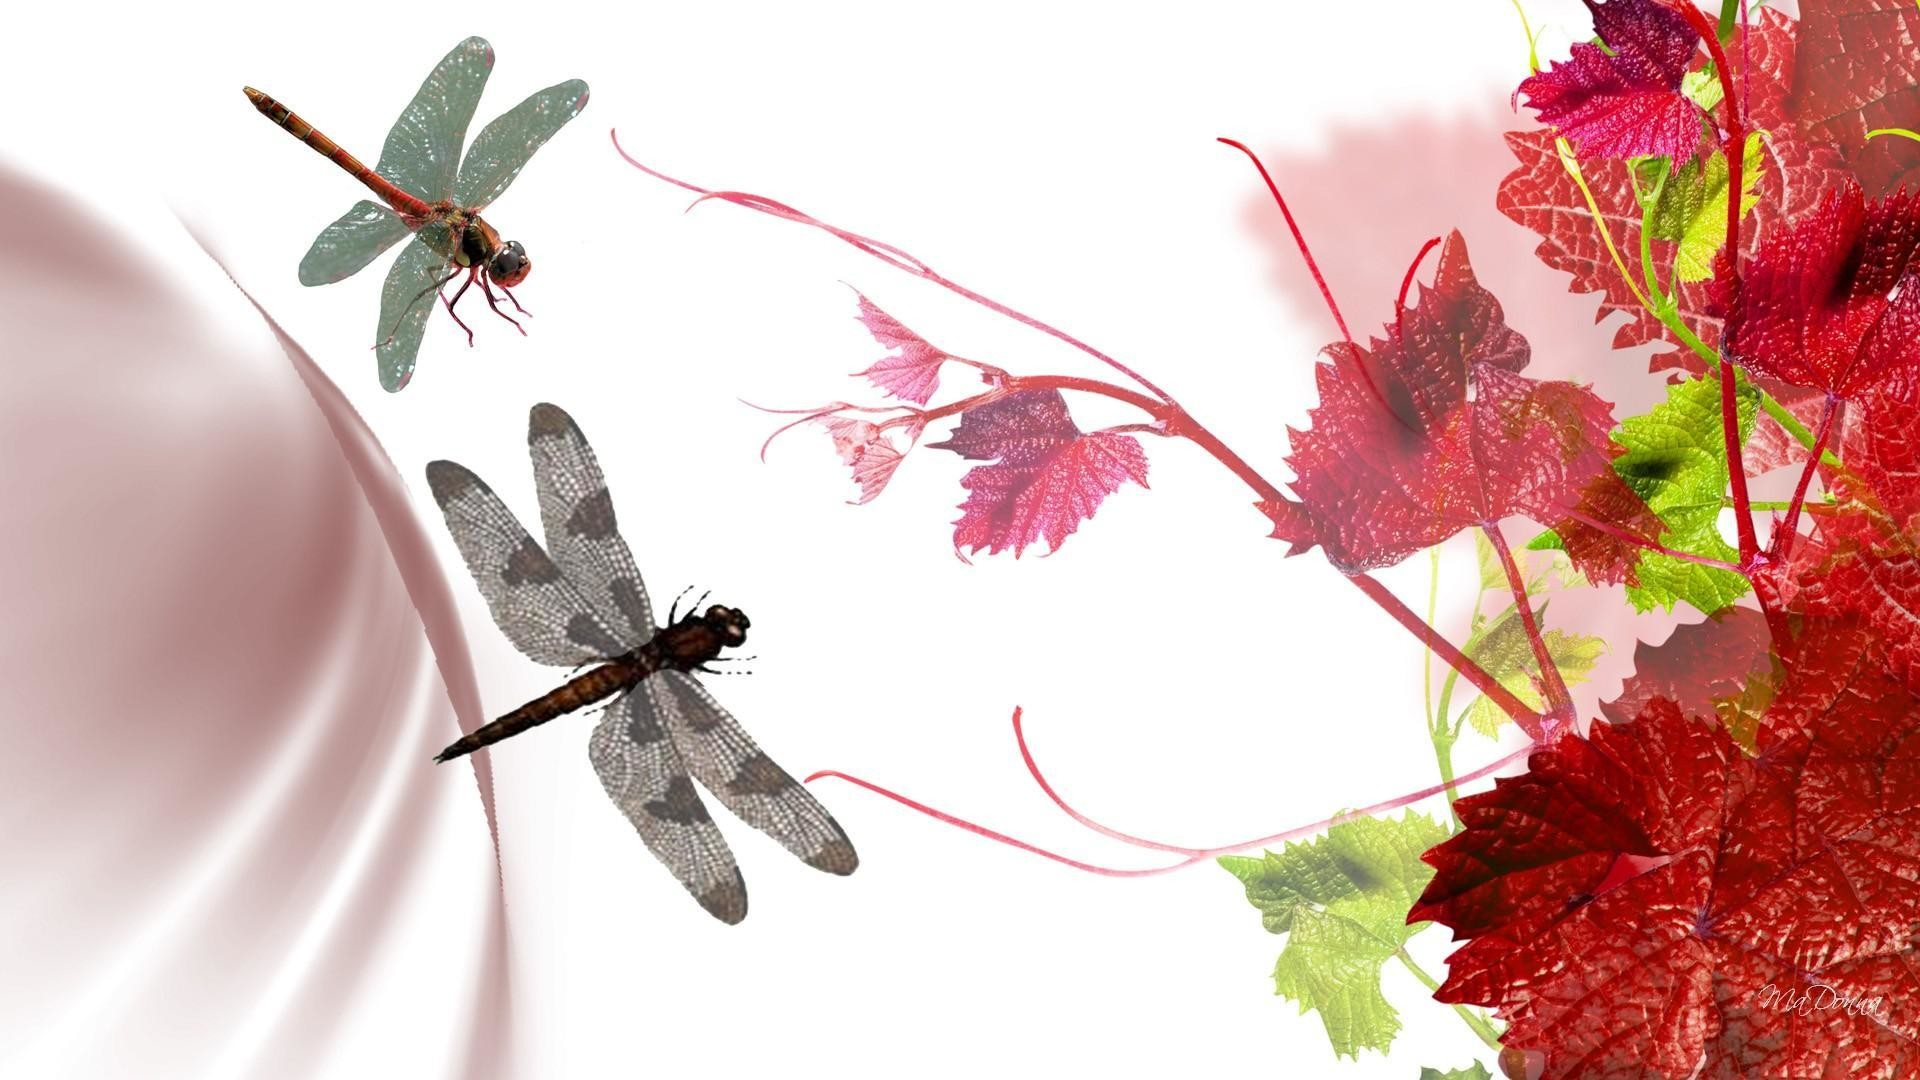 Res: 1920x1080, Grape Leaves Dragonflies